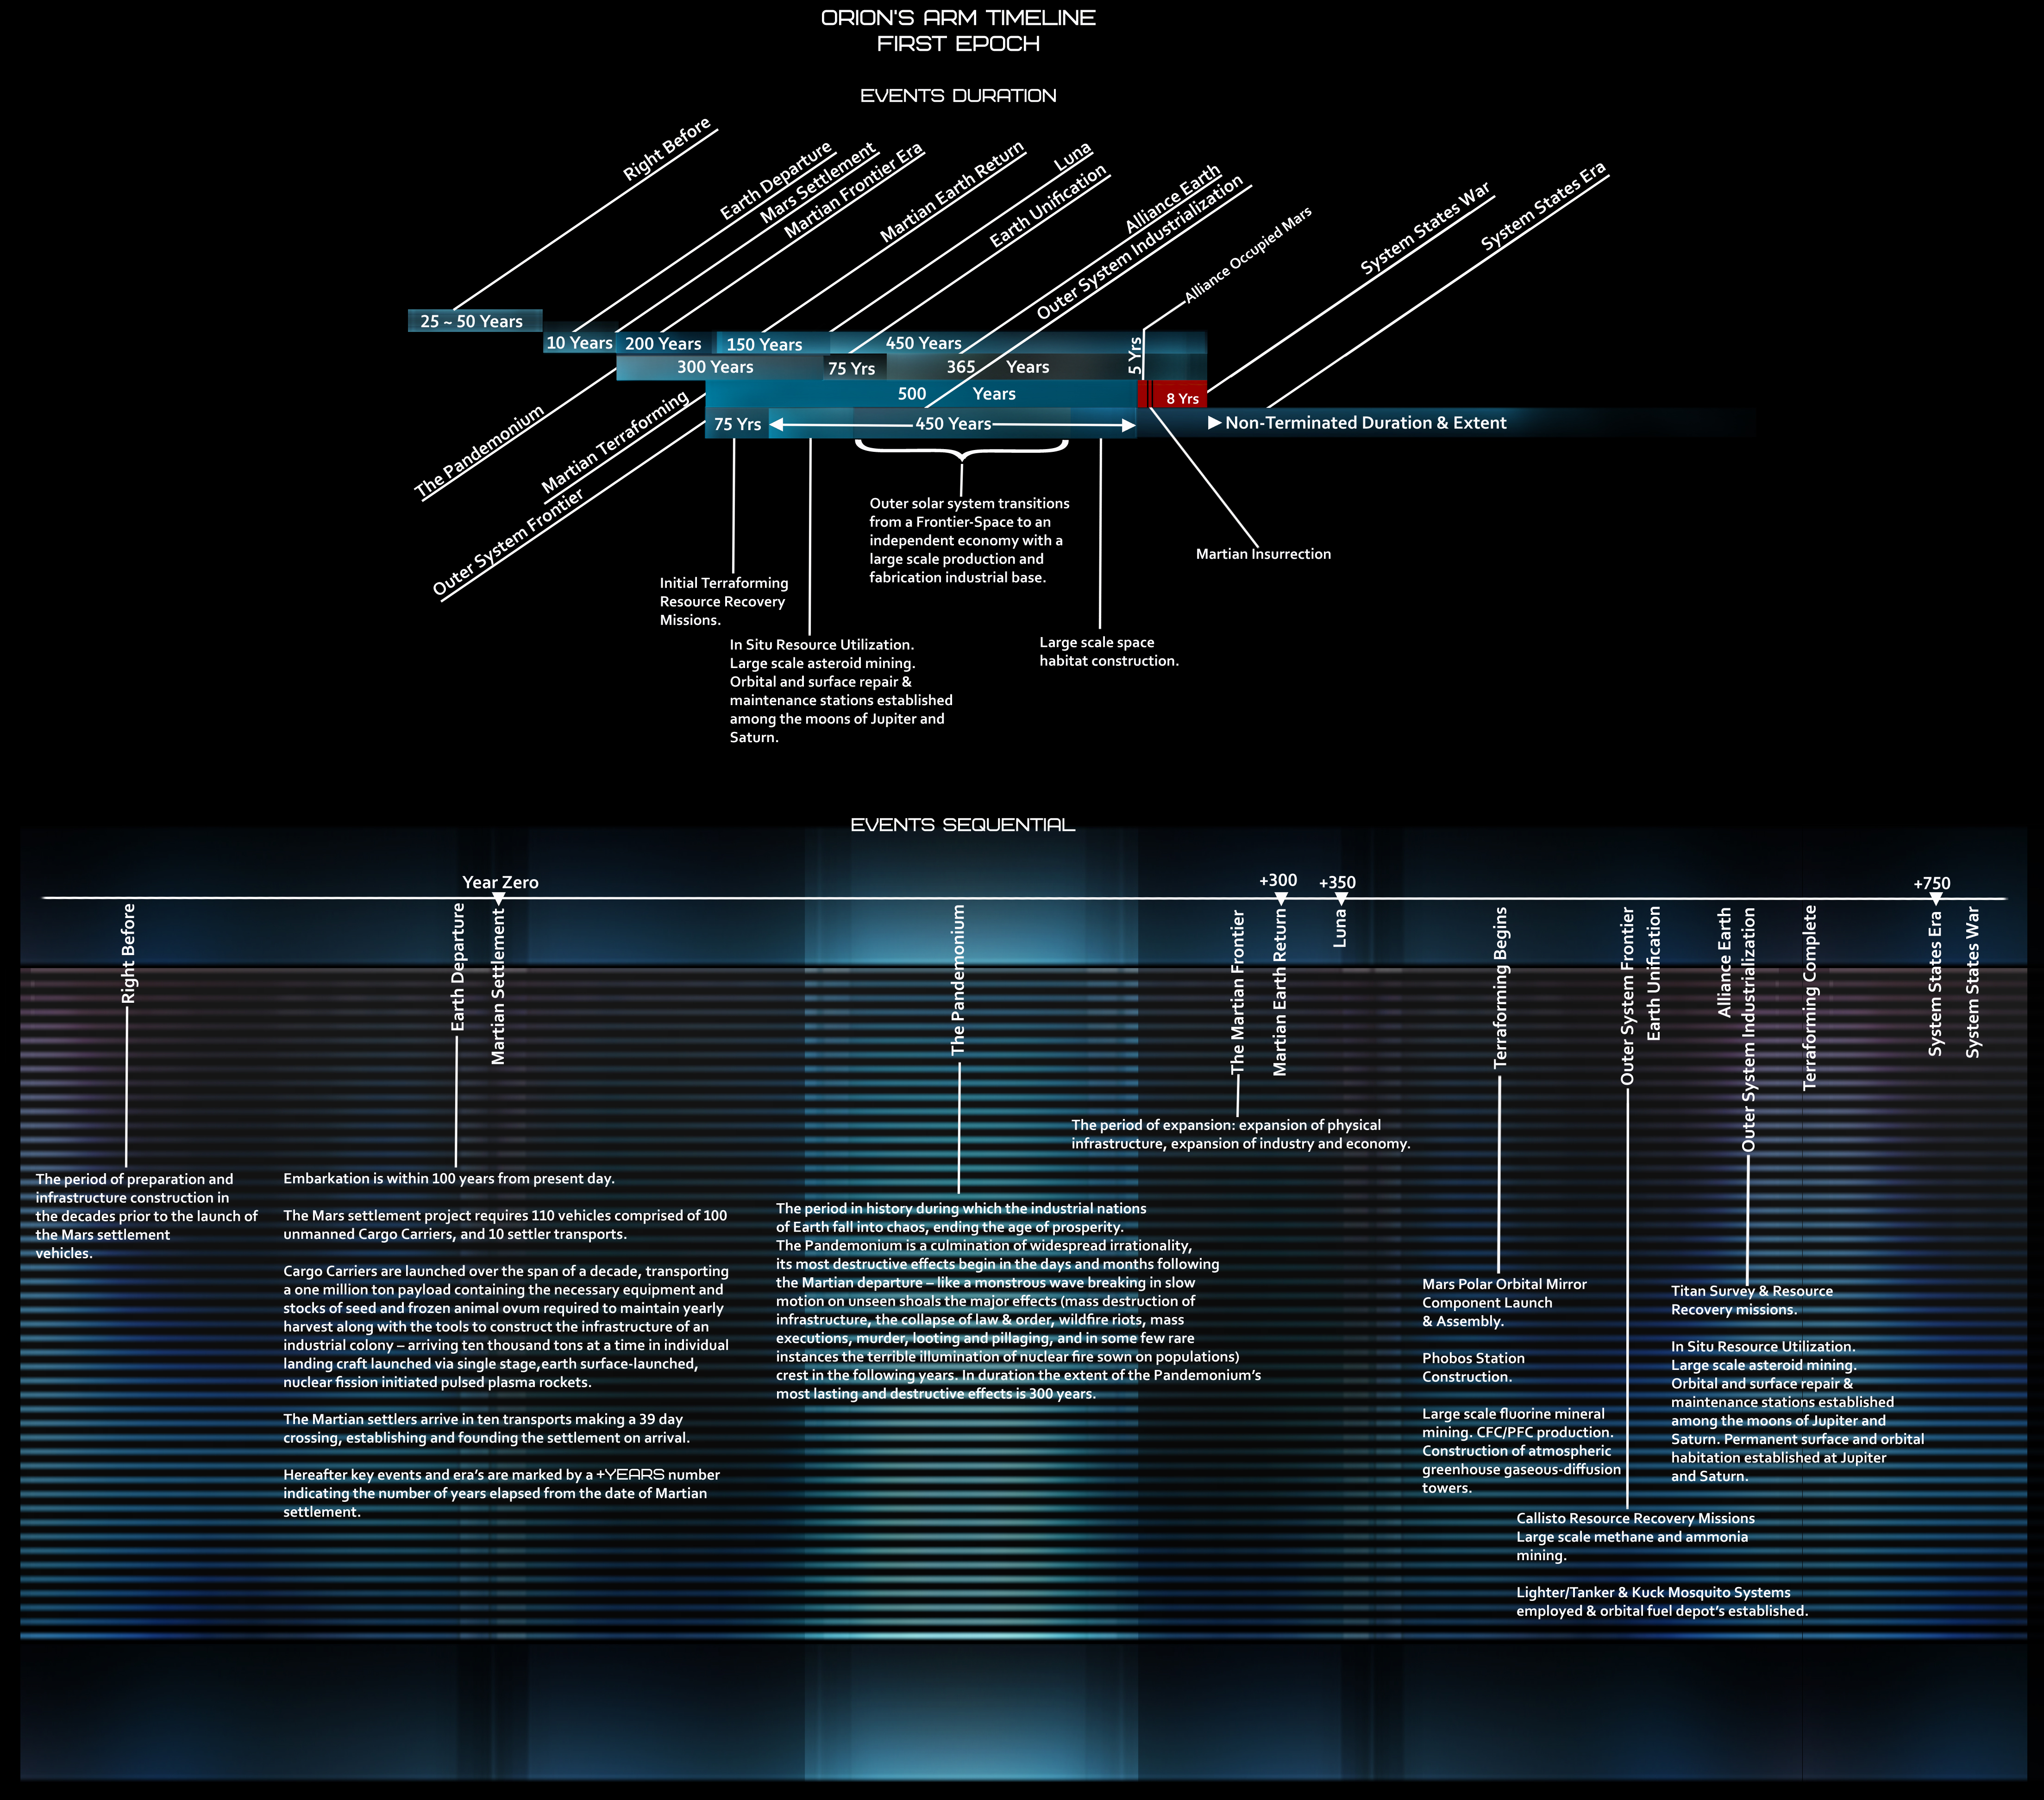 Orion's Arm Future History Timeline